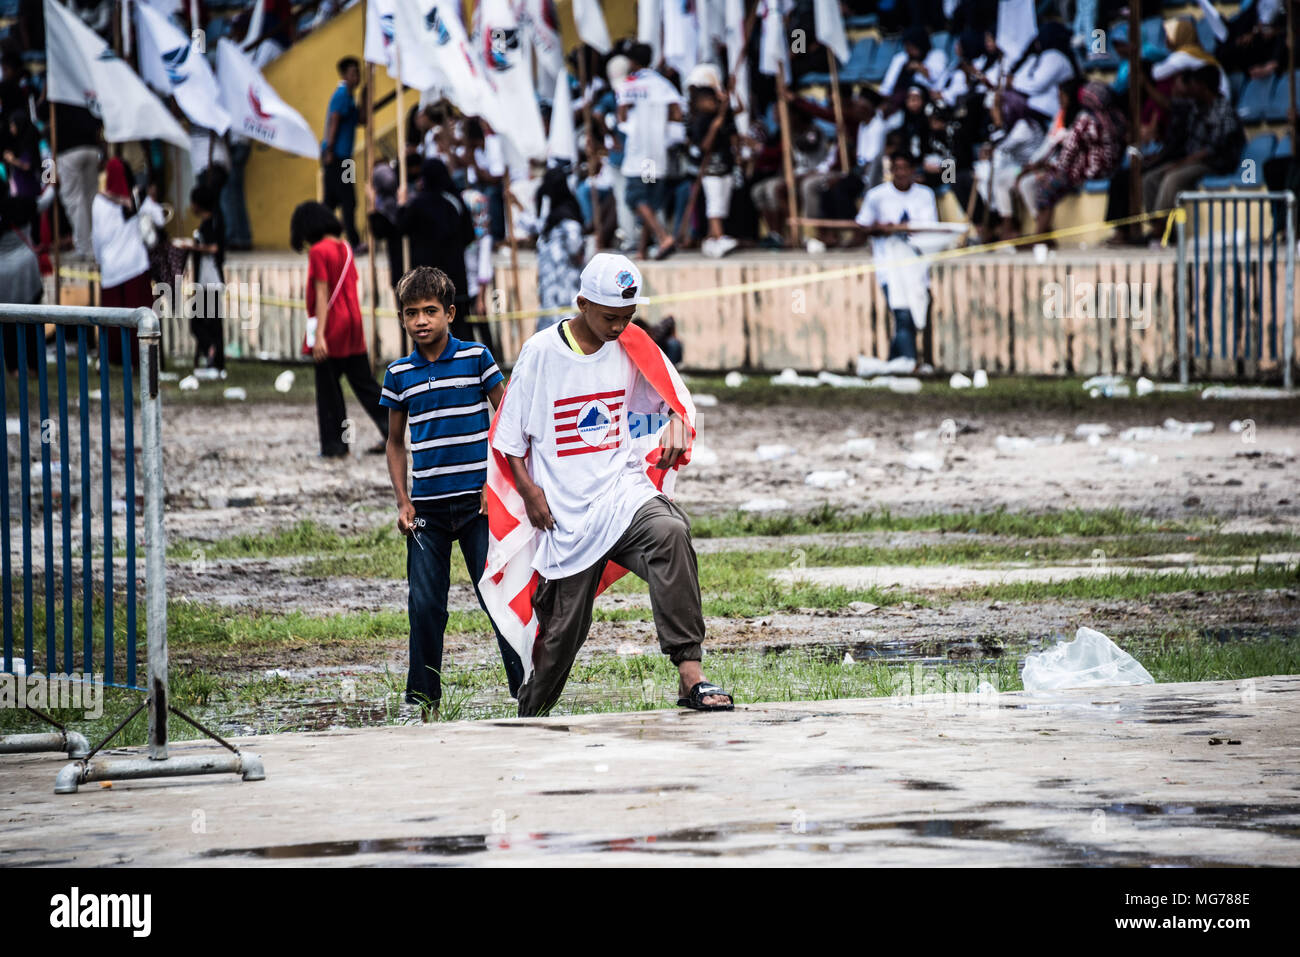 Sabah, Malaysia, 28 April 2018. Nomination Day is a washout in Semporna, but the rain doesn't stop supporters in this hotly contested state - Semporna, Sabah, Malaysia, 28 April 2018 Credit: Elizabeth Fitt/Alamy Live News - Stock Image